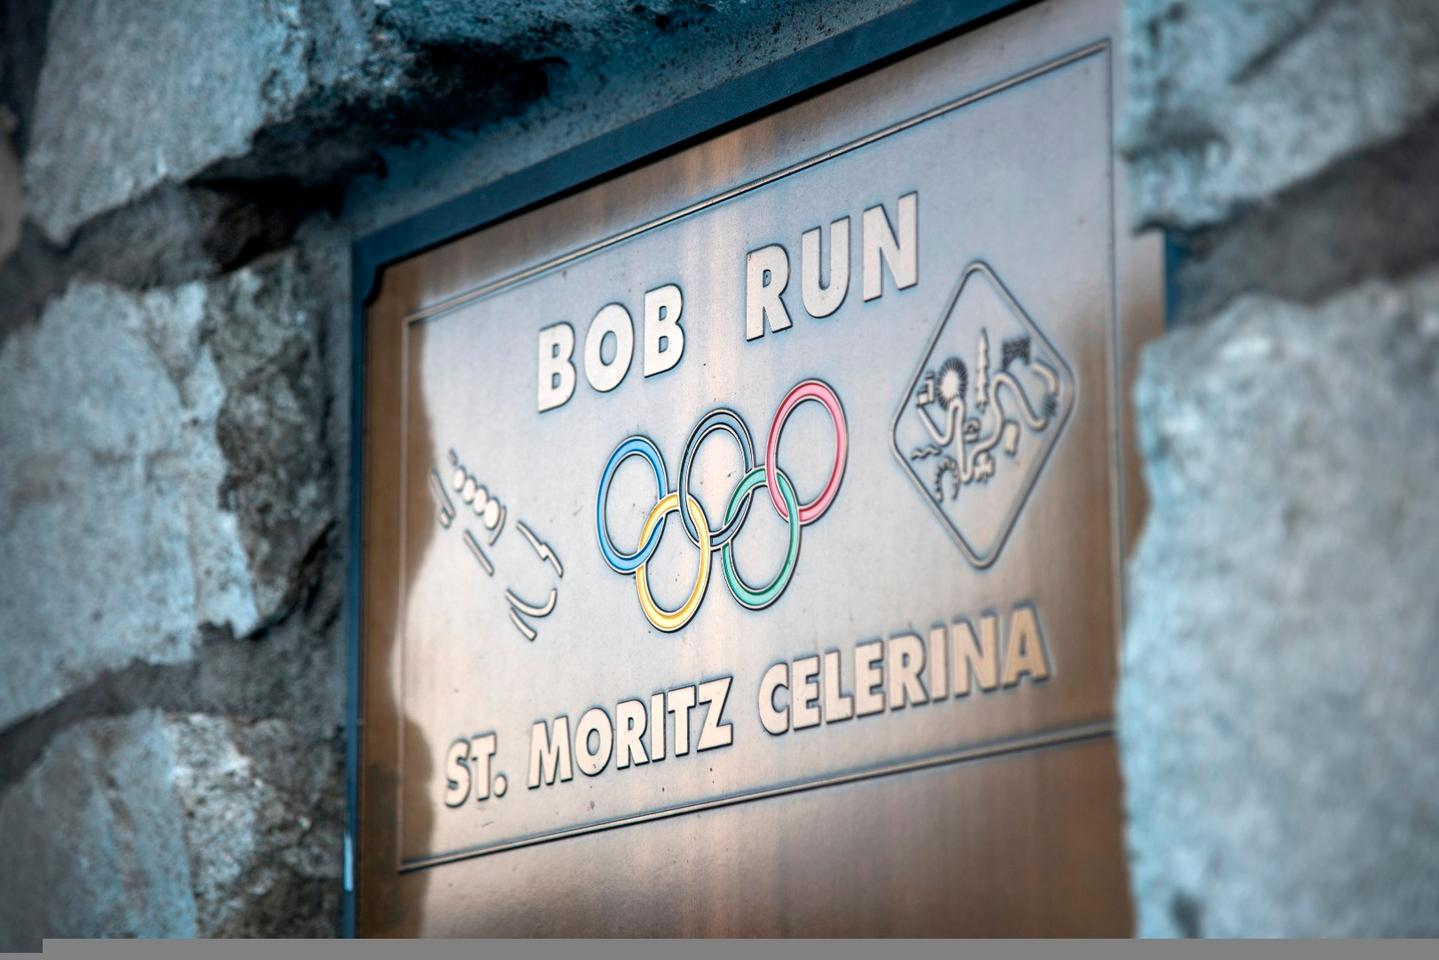 Subaru and Mark Higgins took on the bobsled run in St. Moritz